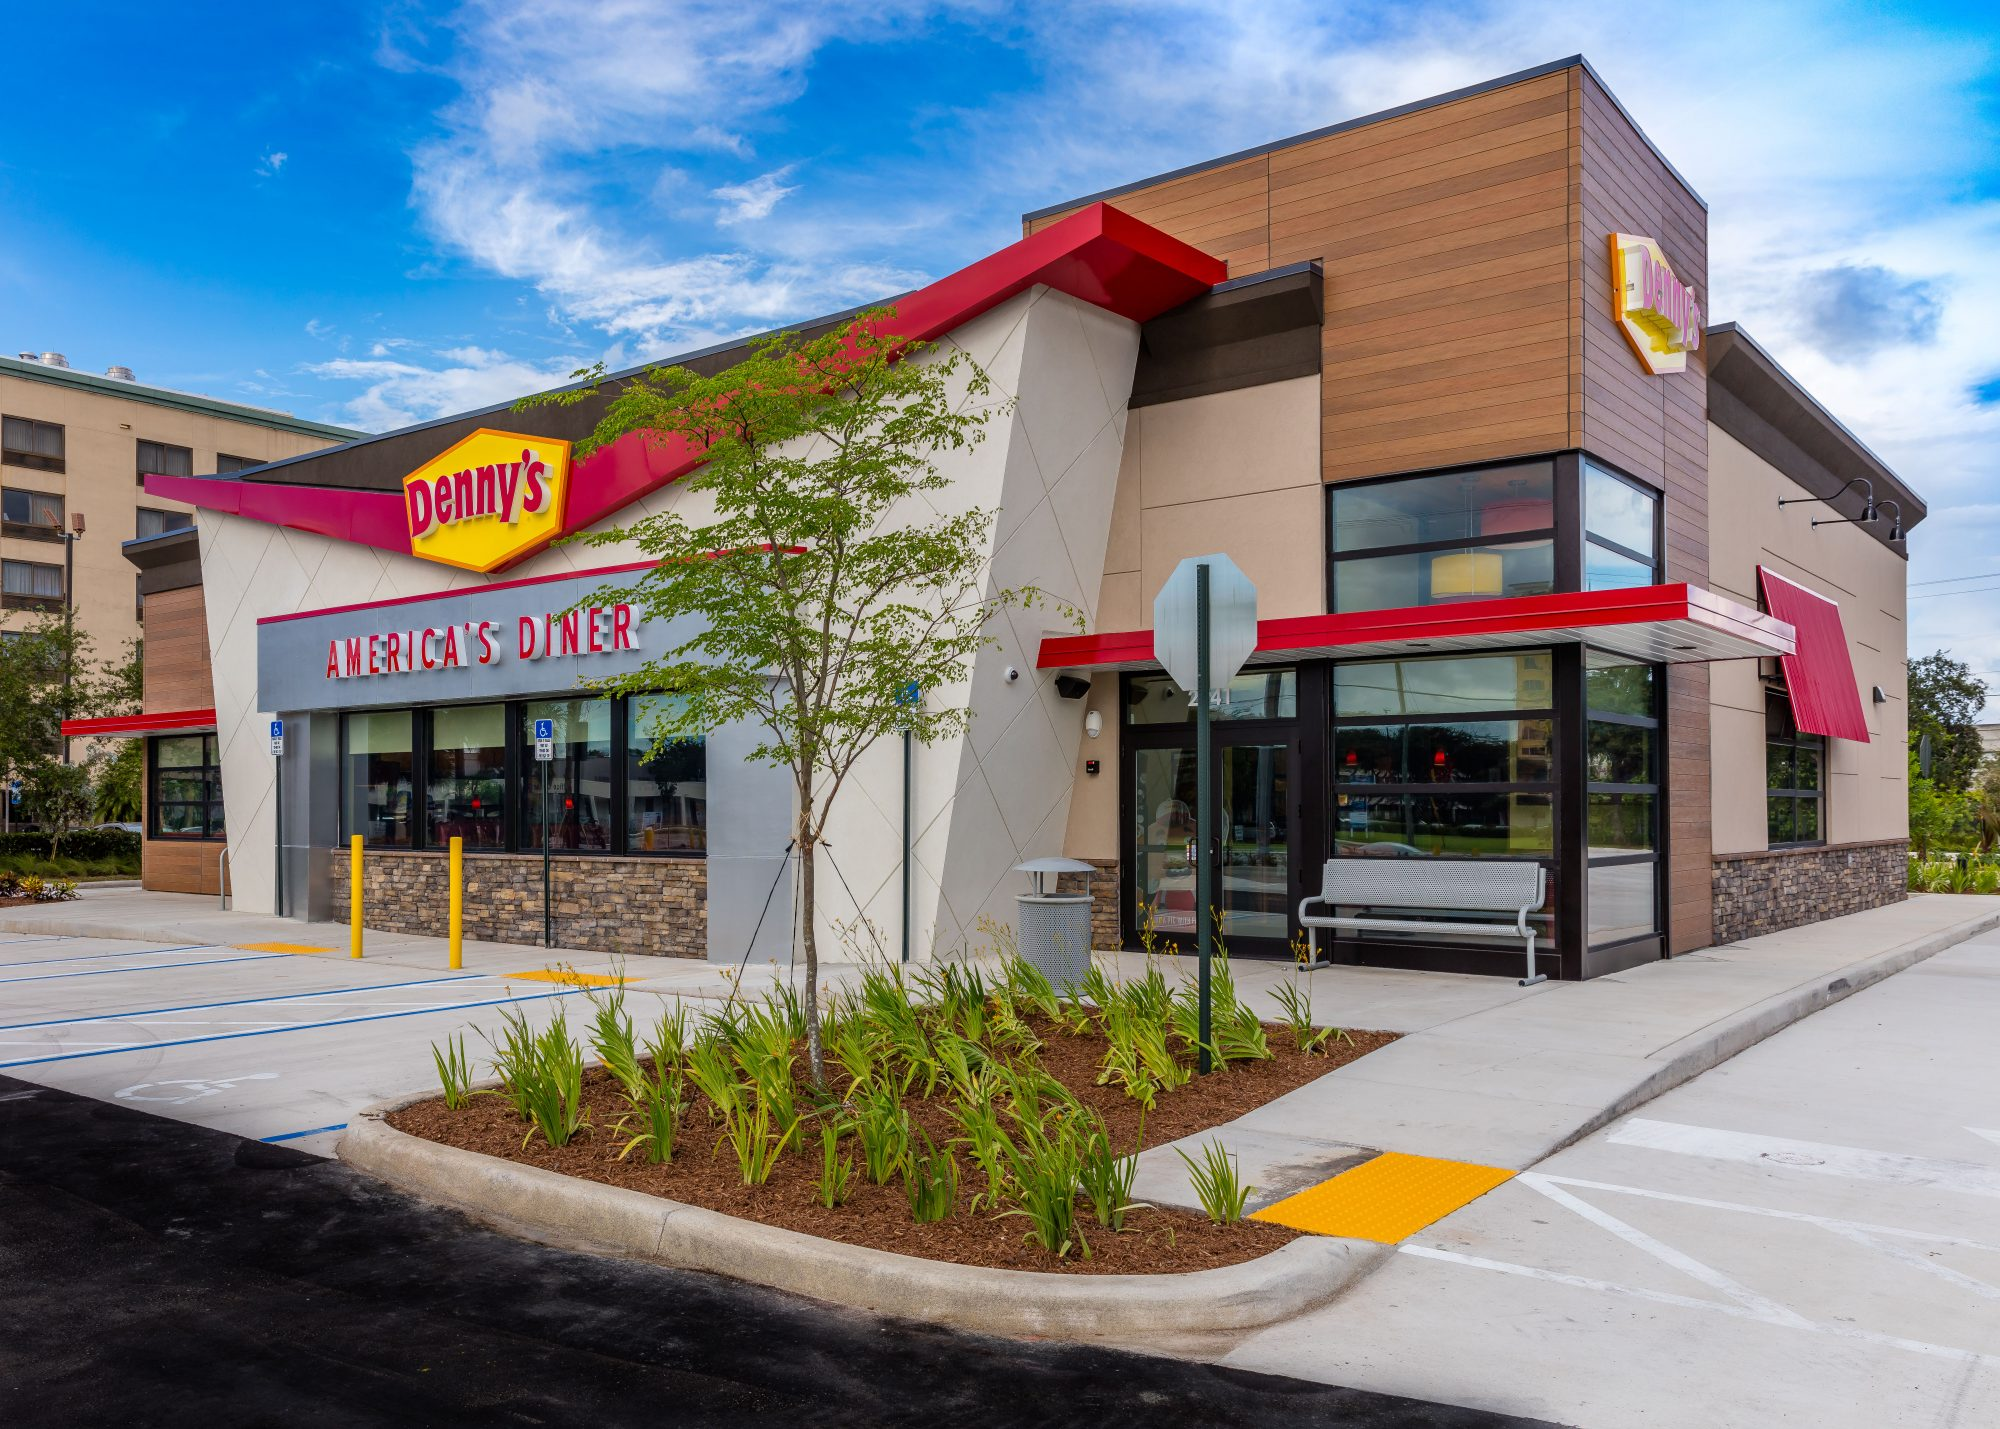 Denny's Adds Digital Ordering to the Menu